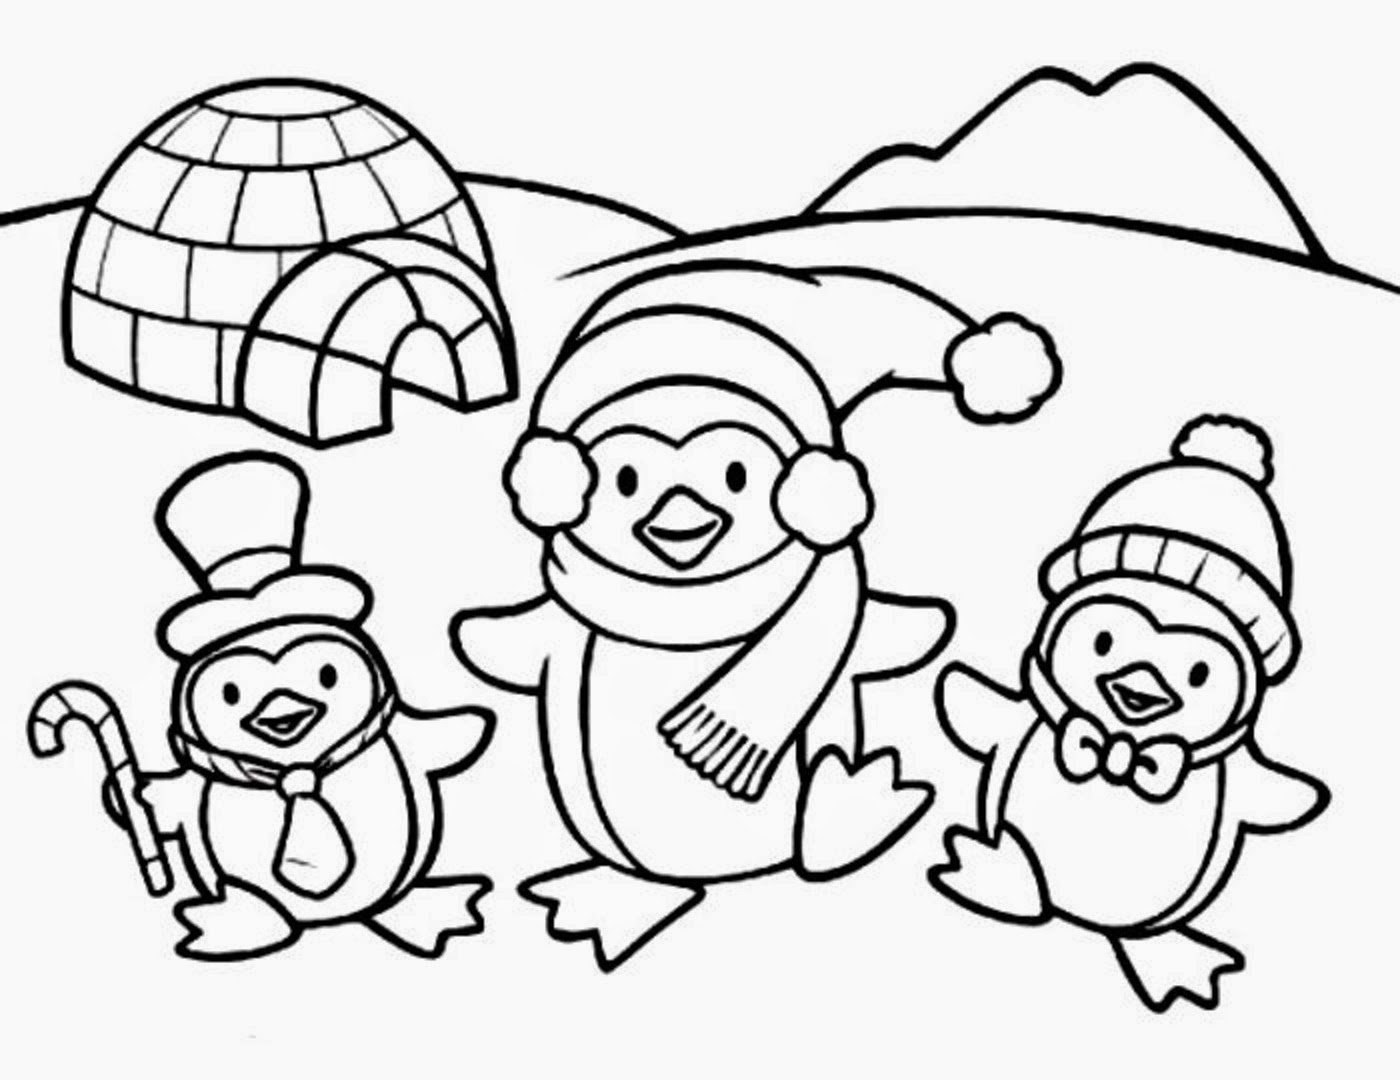 penguin colouring sheet printable penguin coloring pages for kids cool2bkids penguin sheet colouring